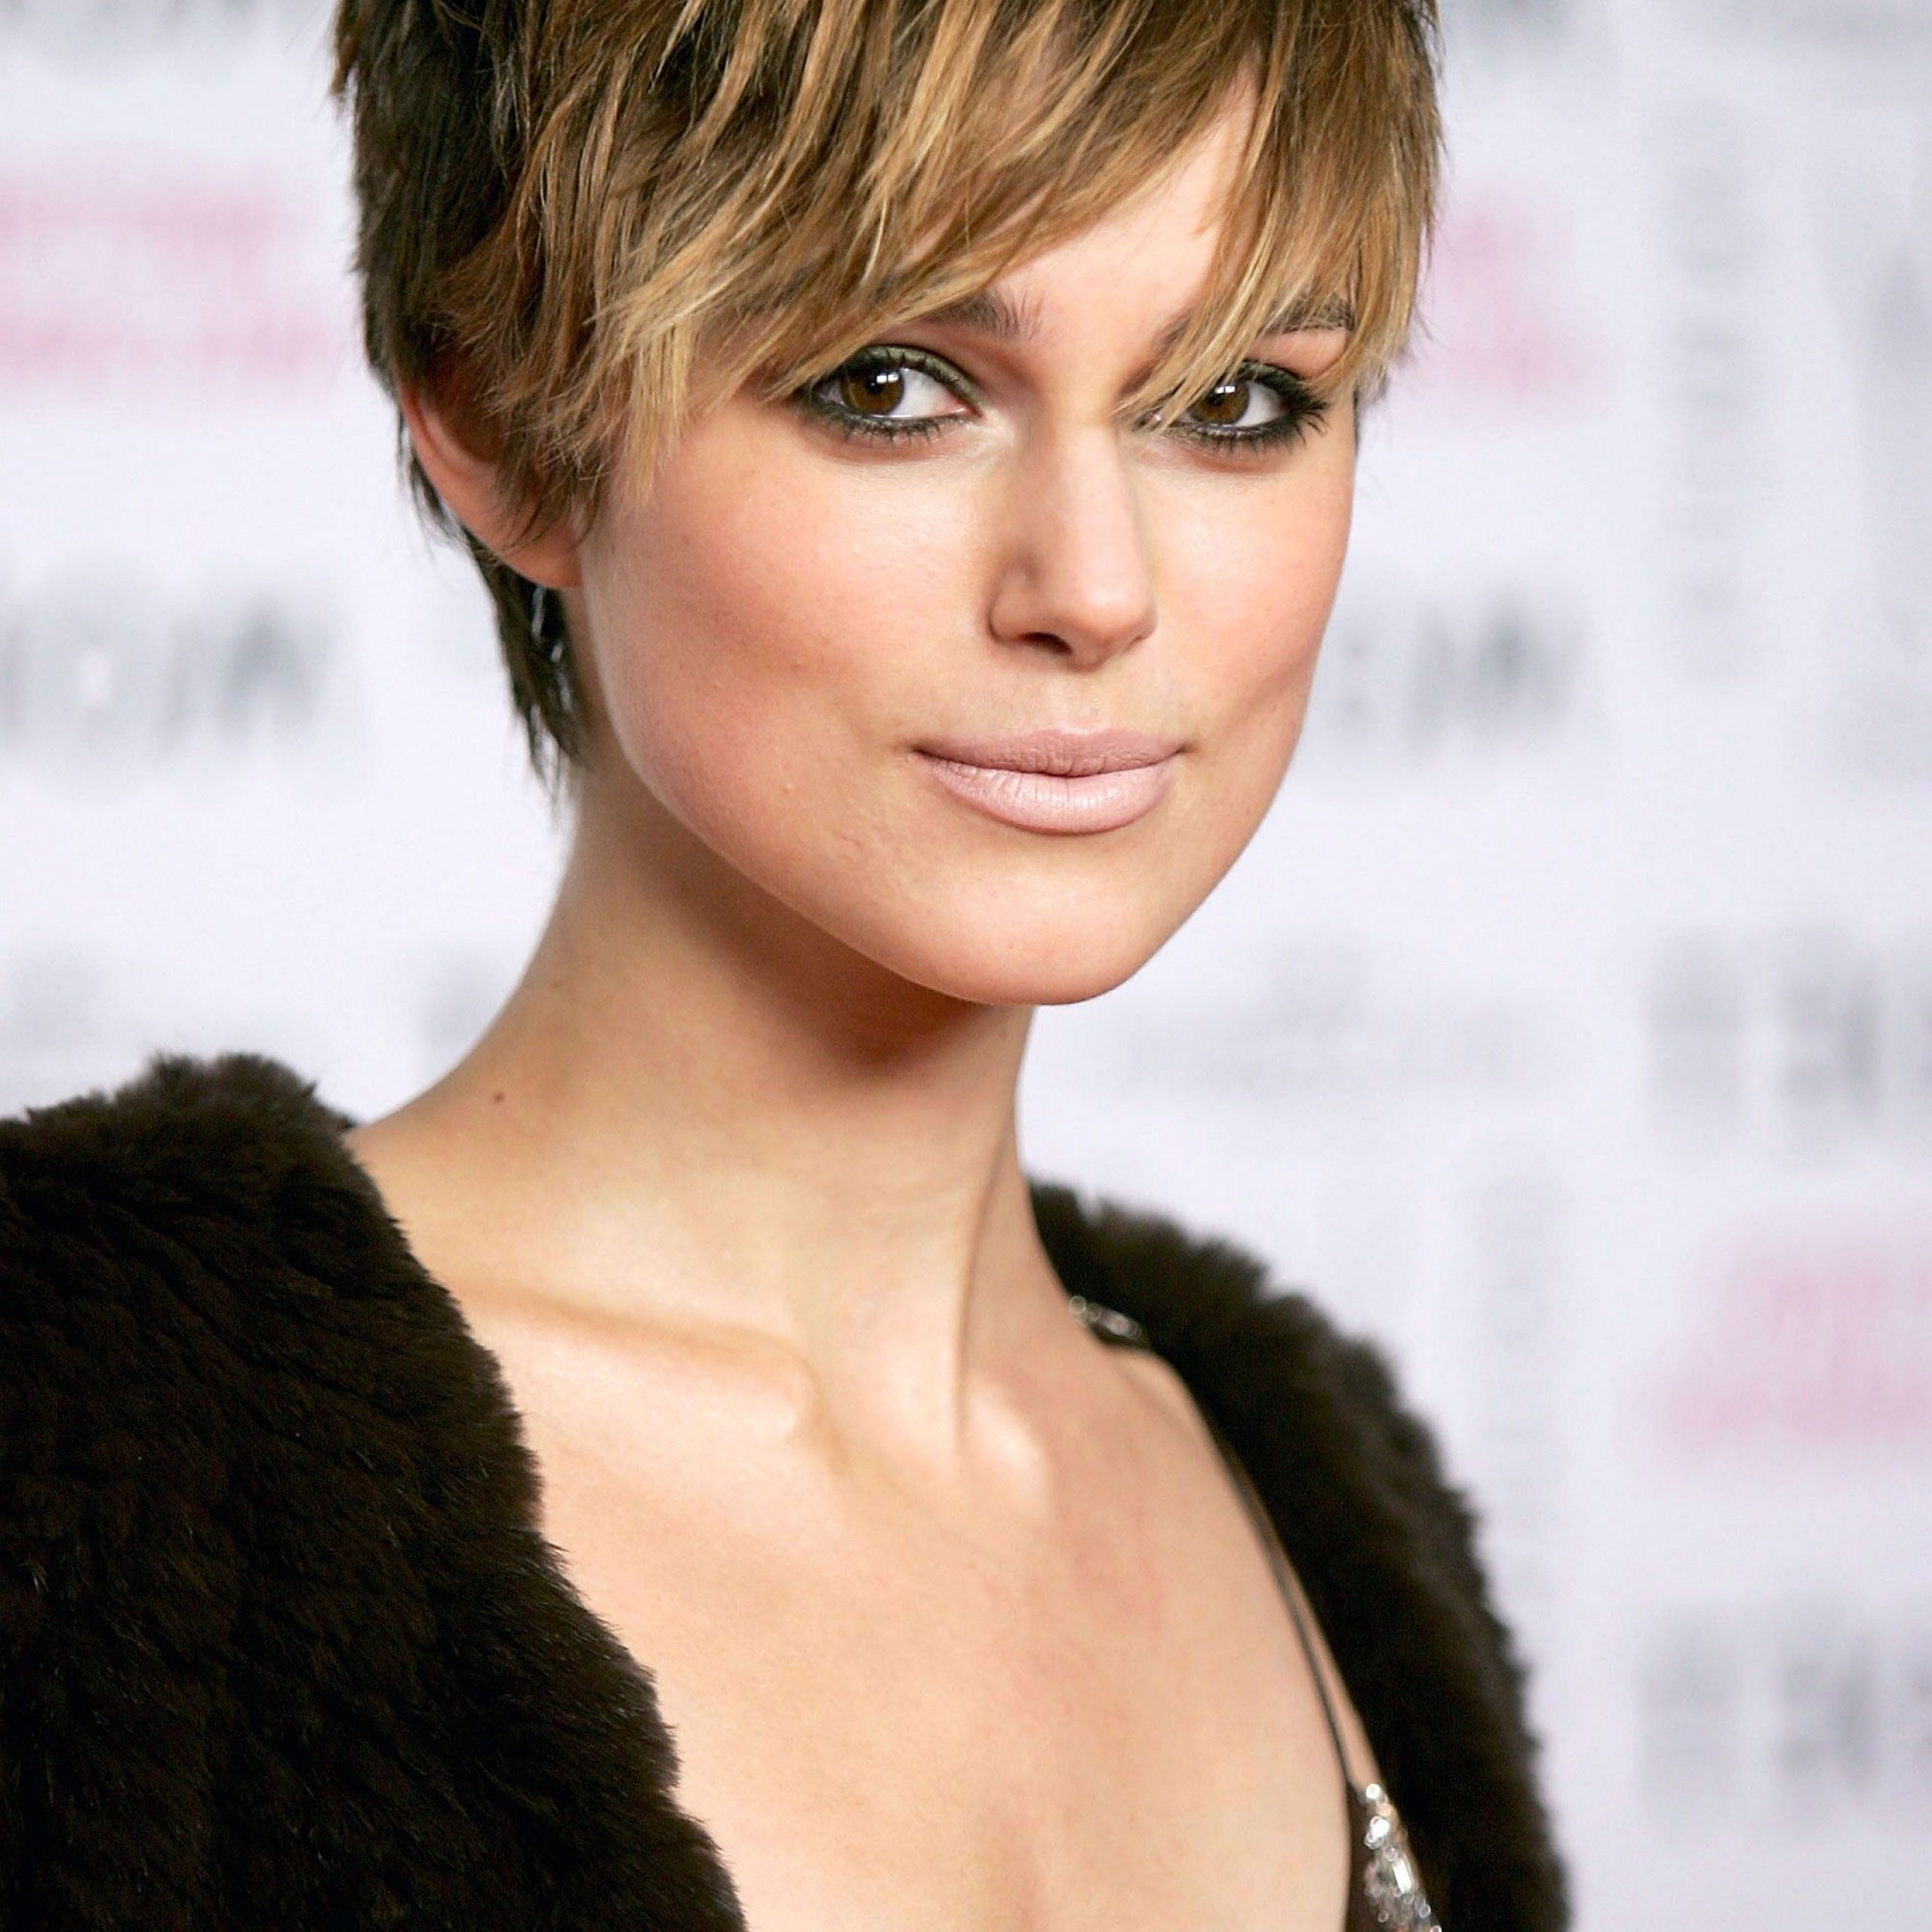 60+ Pixie Cuts We Love For 2020 – Short Pixie Hairstyles Within Widely Used Super Short Shag Pixie Haircuts (View 6 of 20)